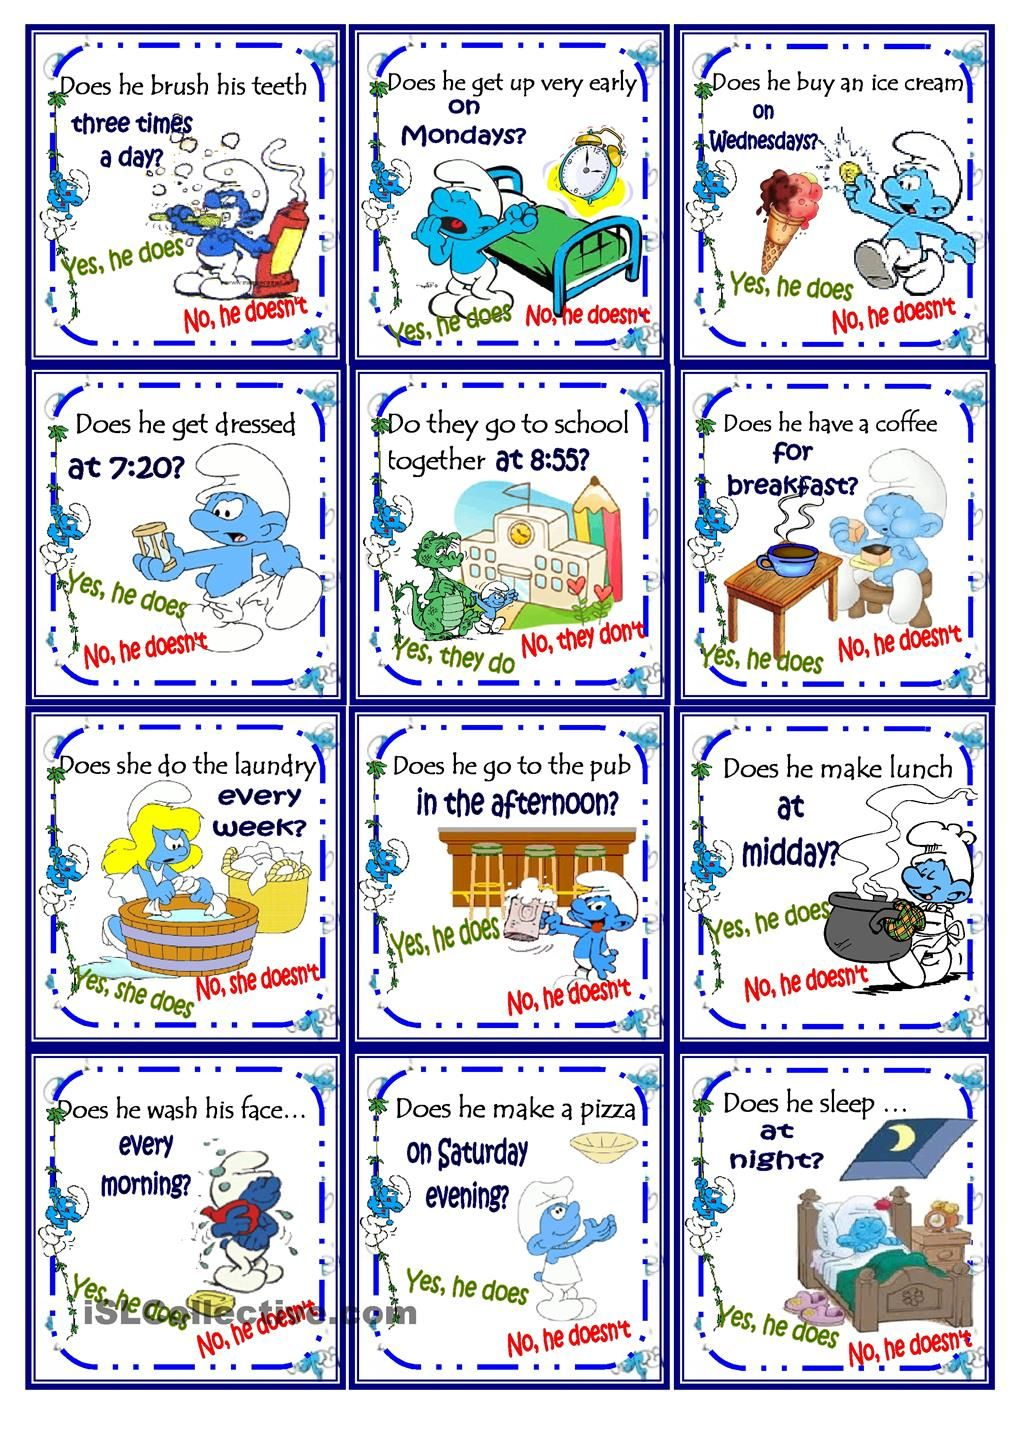 Smurfs Daily Routine (present Simple)Go Fish Card Game